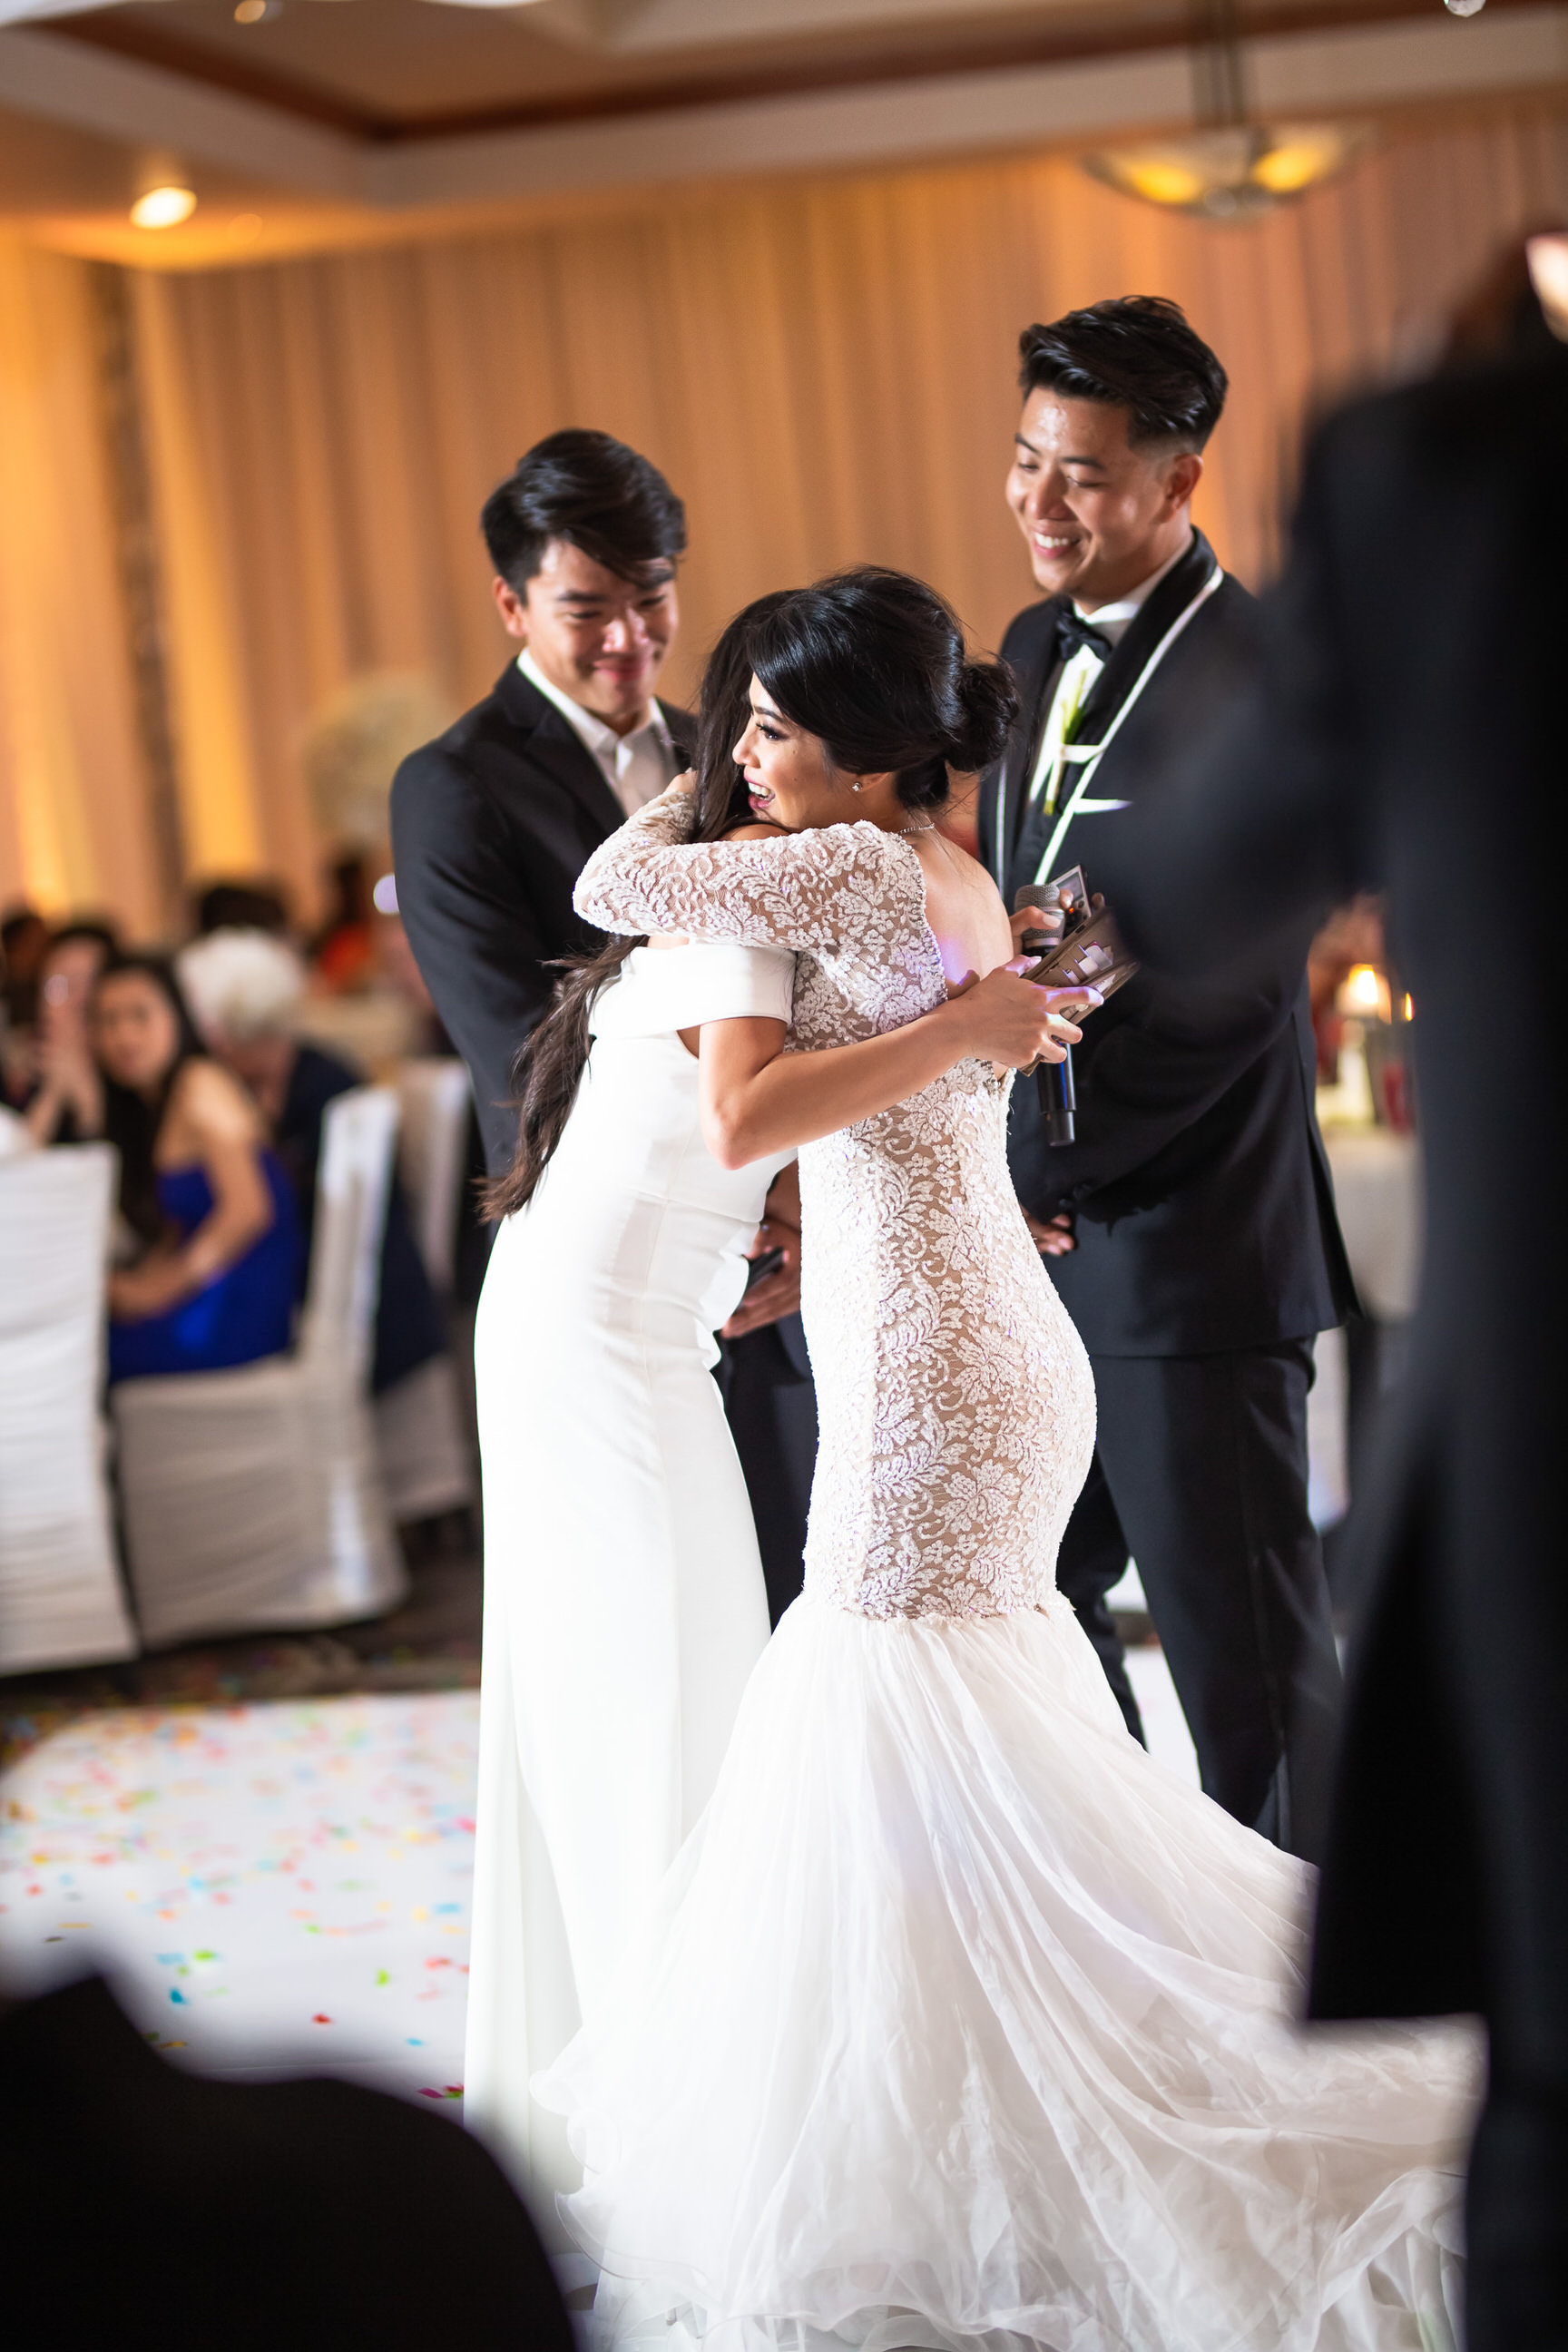 Dream_Wedding_Thanh_Thanh-4174.jpg